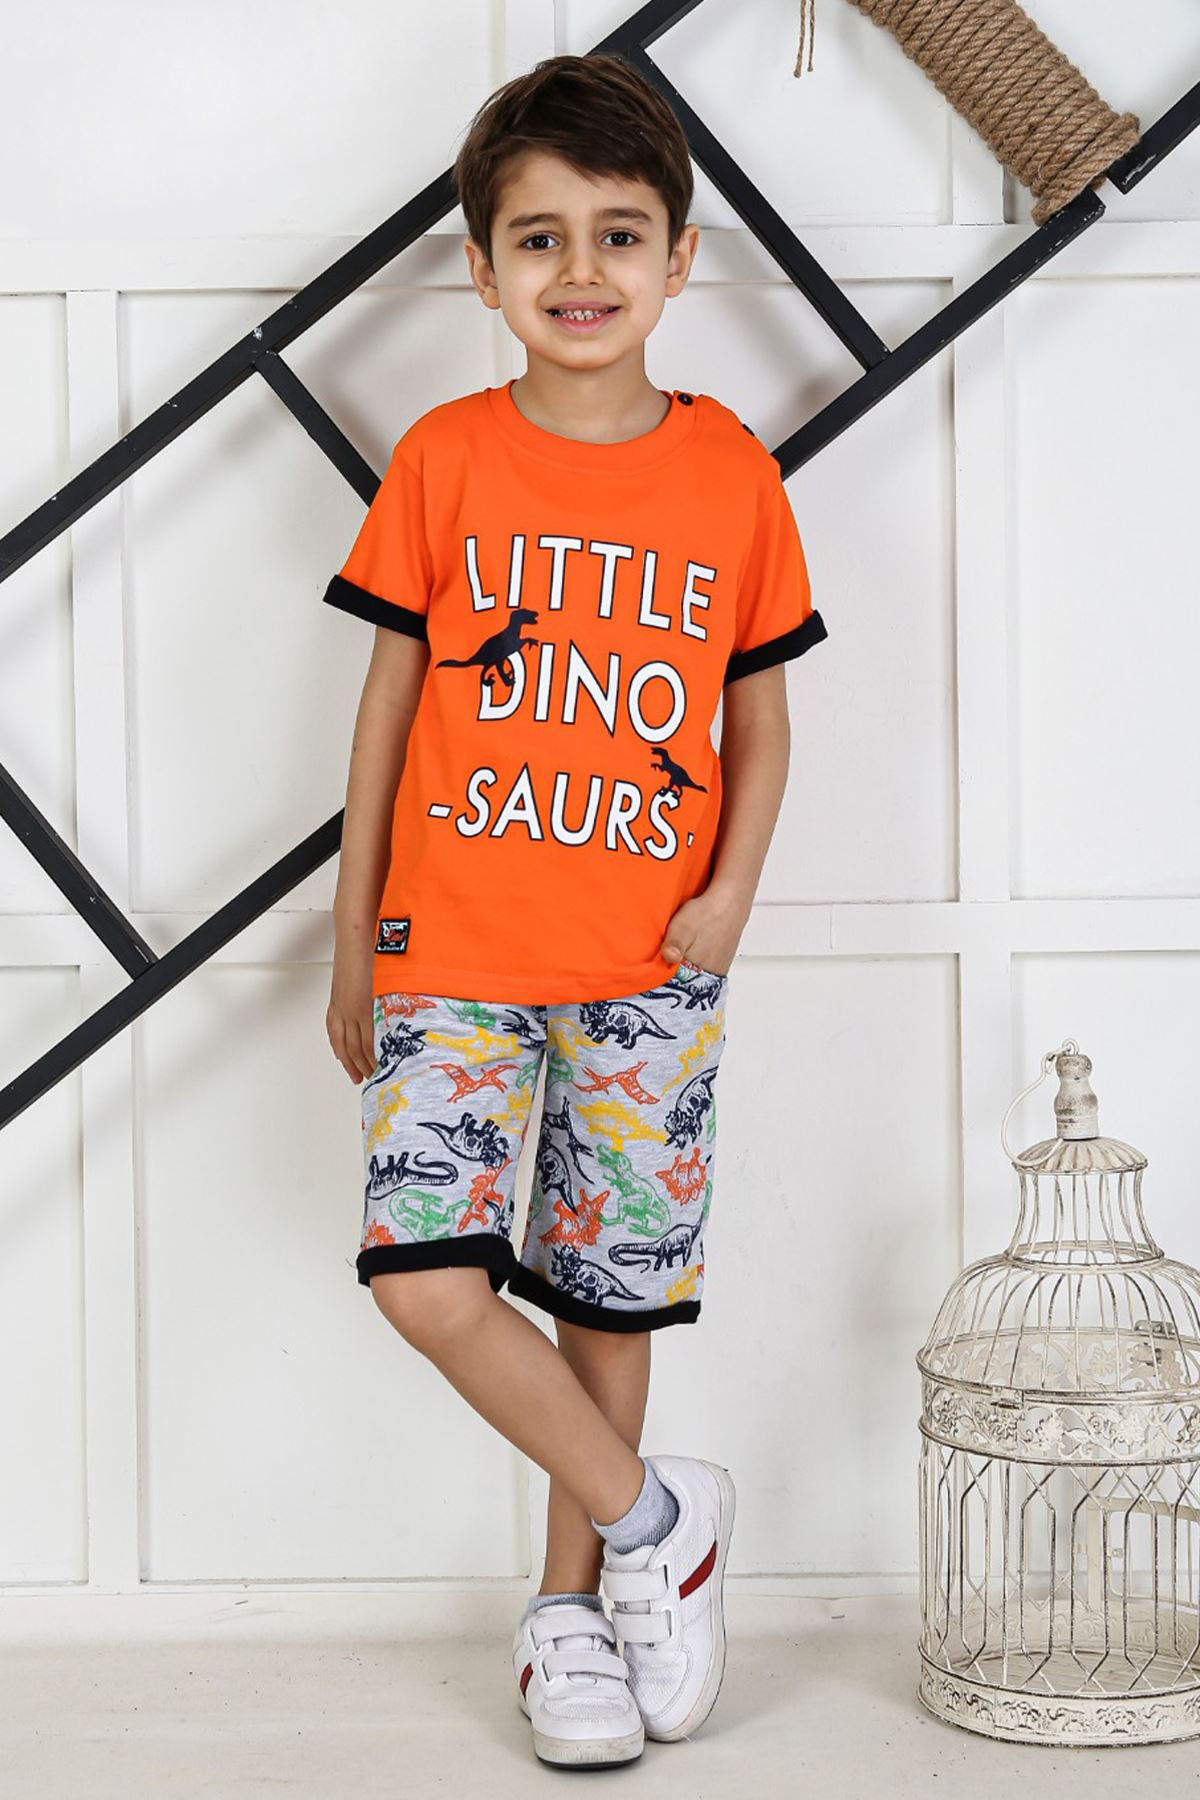 2021 Baby Boy Teens Clothes Suits Summer Children T-Shirts Shorts 2-Piece Clothing Set Beach Boys Kids Outfits Sport Suit Models